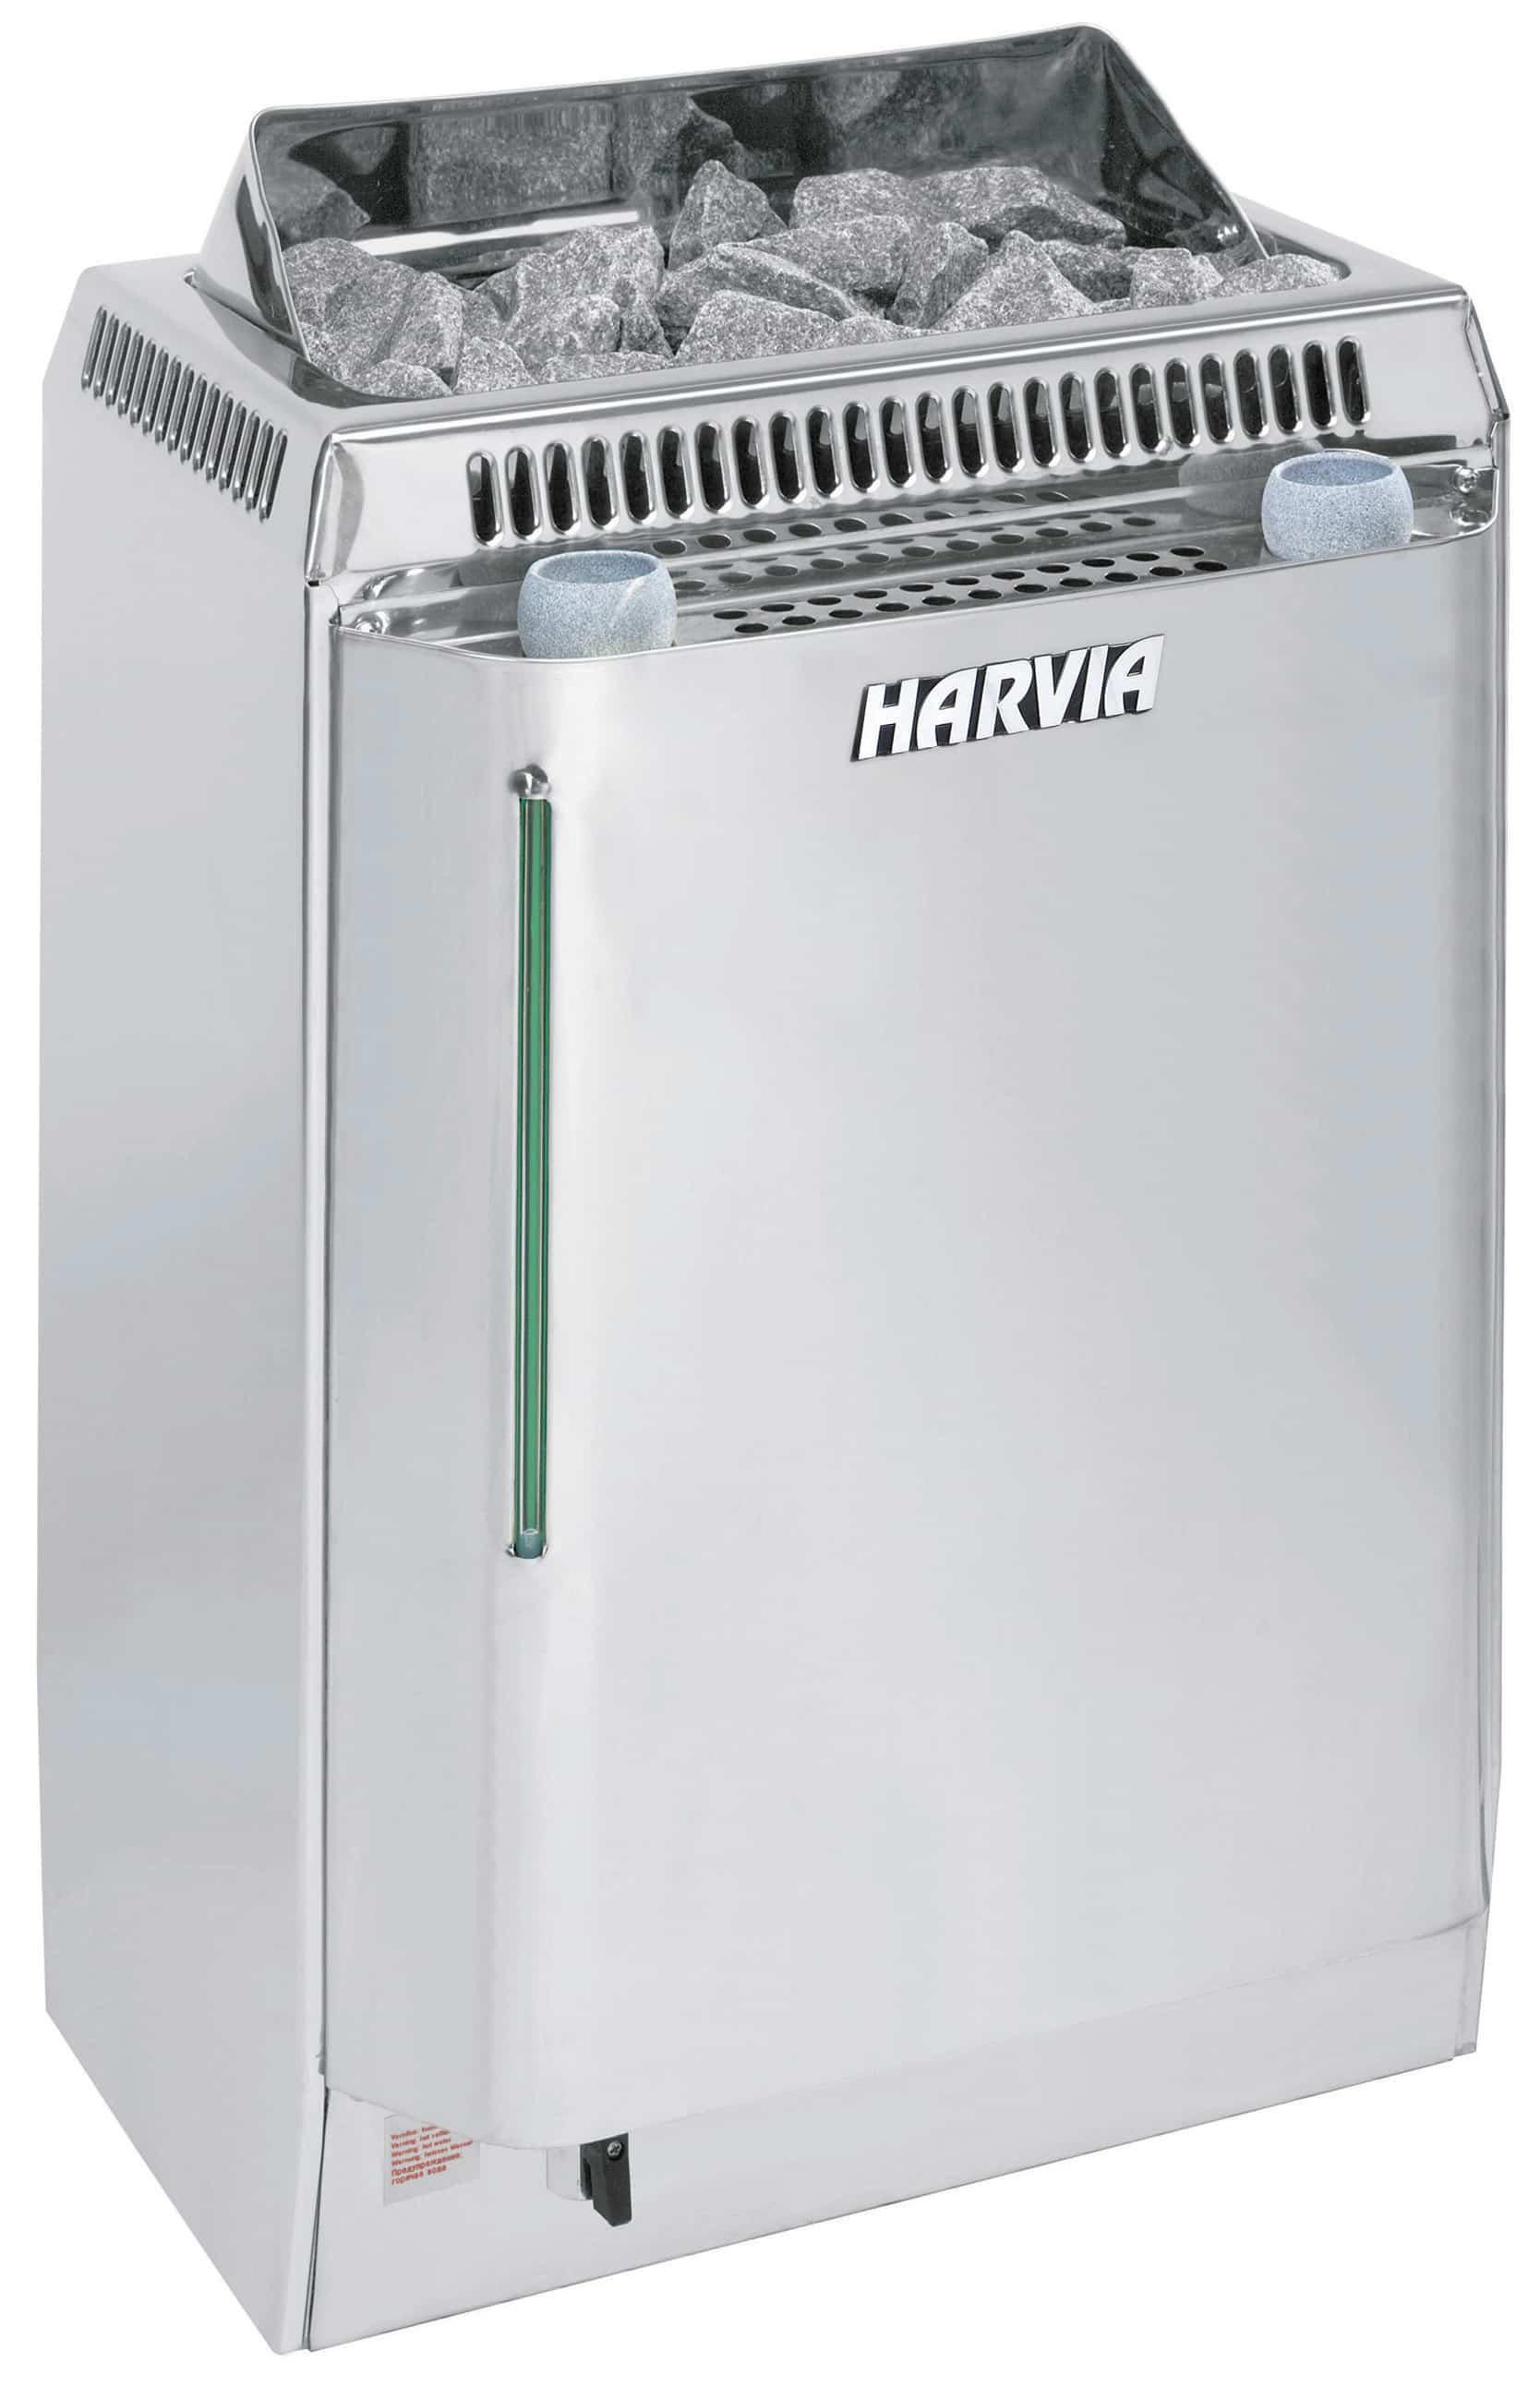 HARVIA  Topclass Combi Automatic  KV80SEA